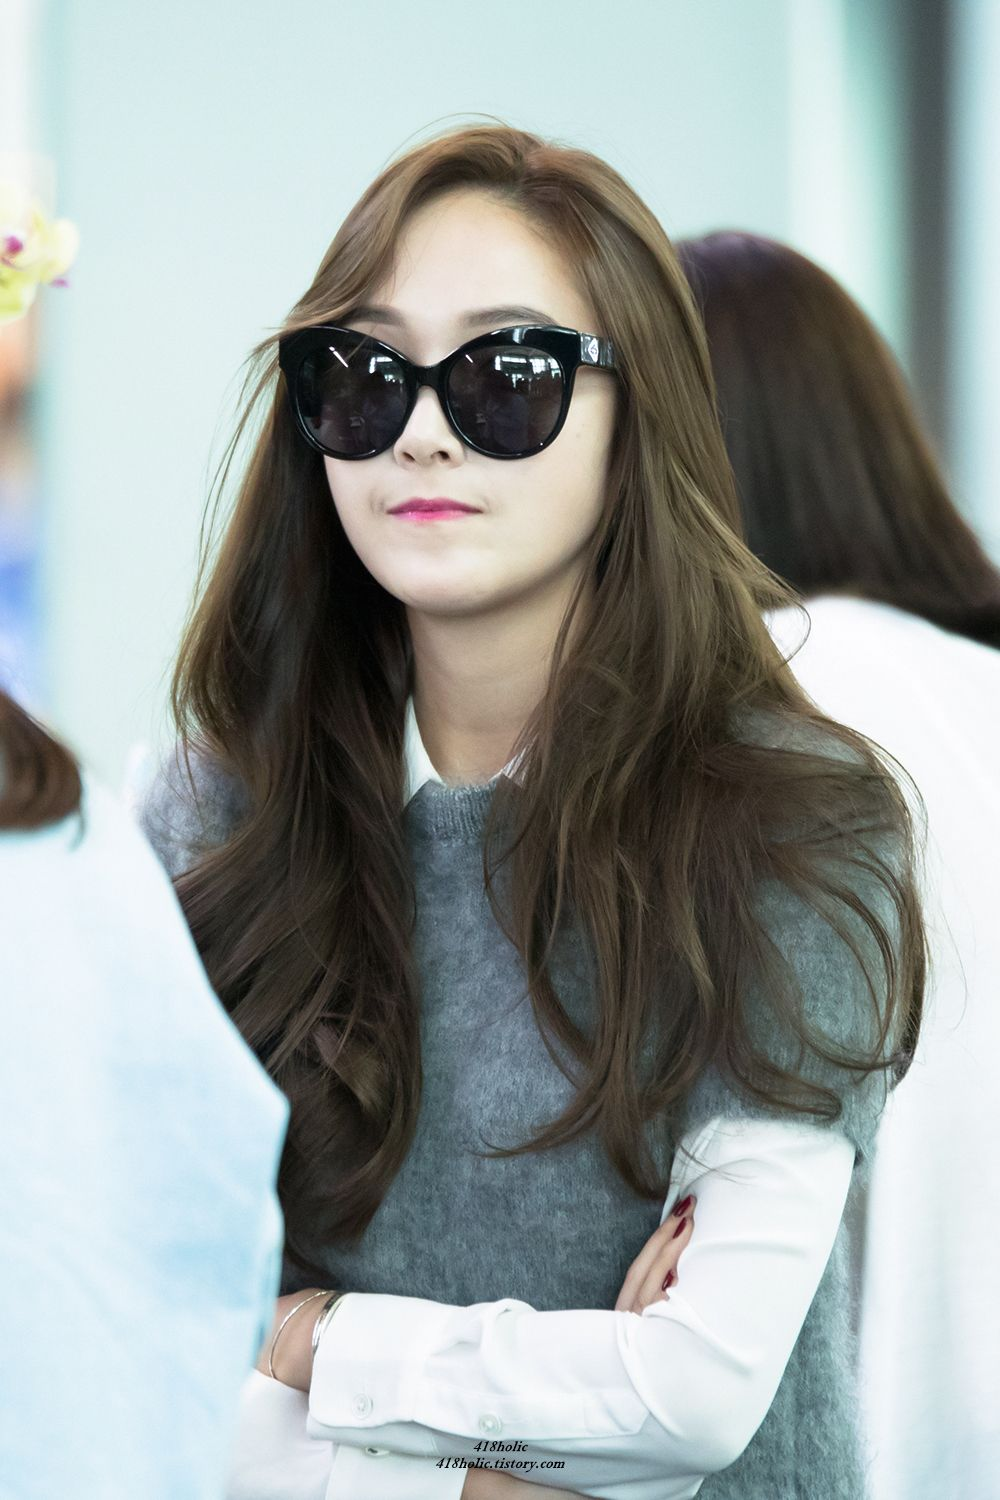 Buy Hairstyle Snsd ideas a la jessica pictures pictures trends